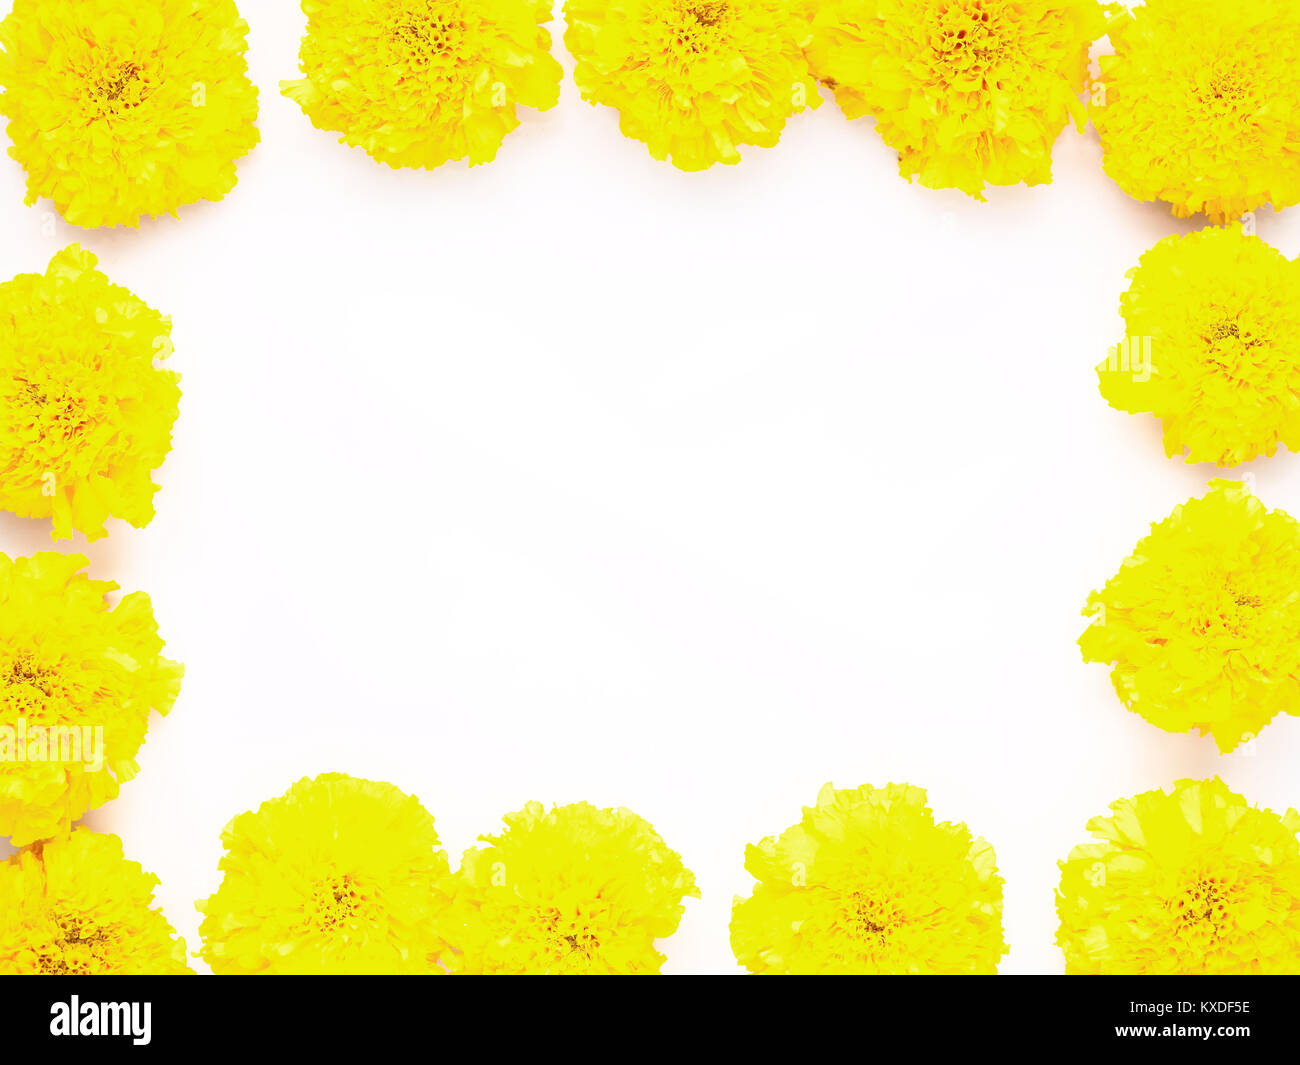 Marigold flower isolated on white background stock photos marigold yellow marigold flower isolated on white background use to worship wisdom god in indian culture by mightylinksfo